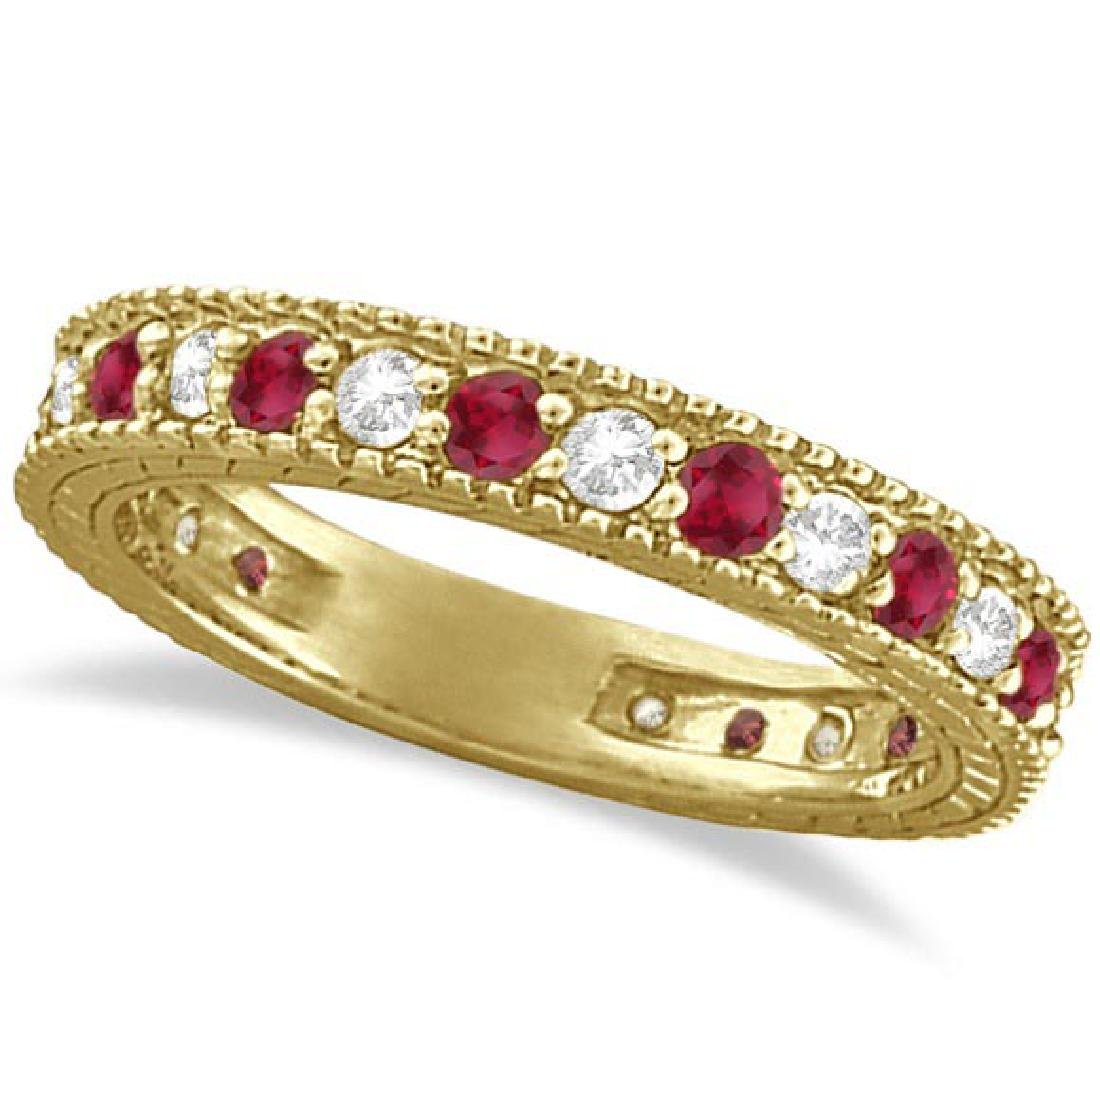 Diamond and Ruby Anniversary Ring Band 14k Yellow Gold